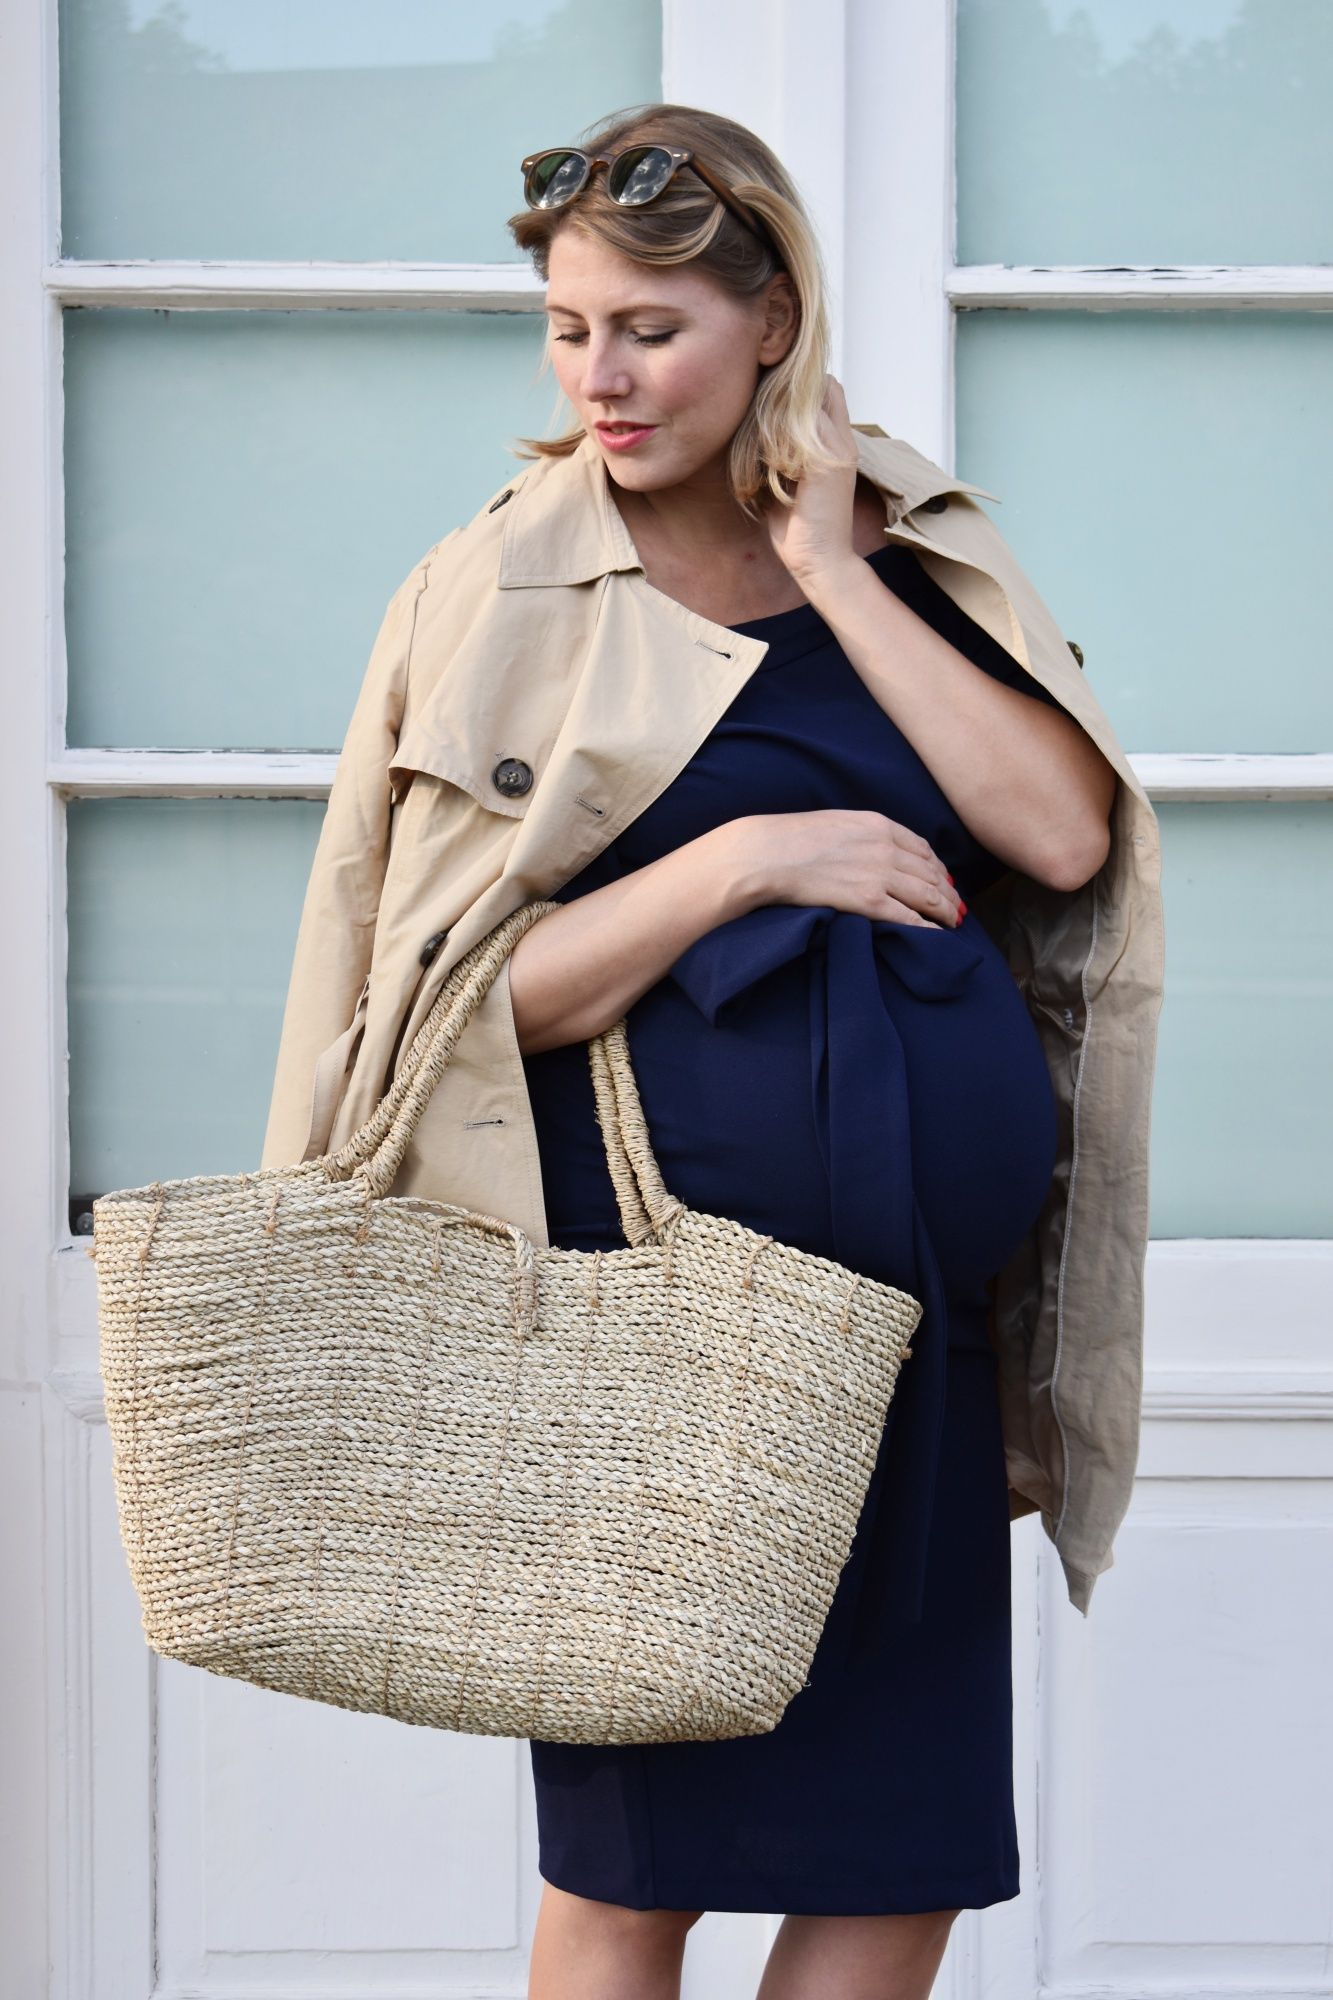 Pin auf Fashion | #stylethebump